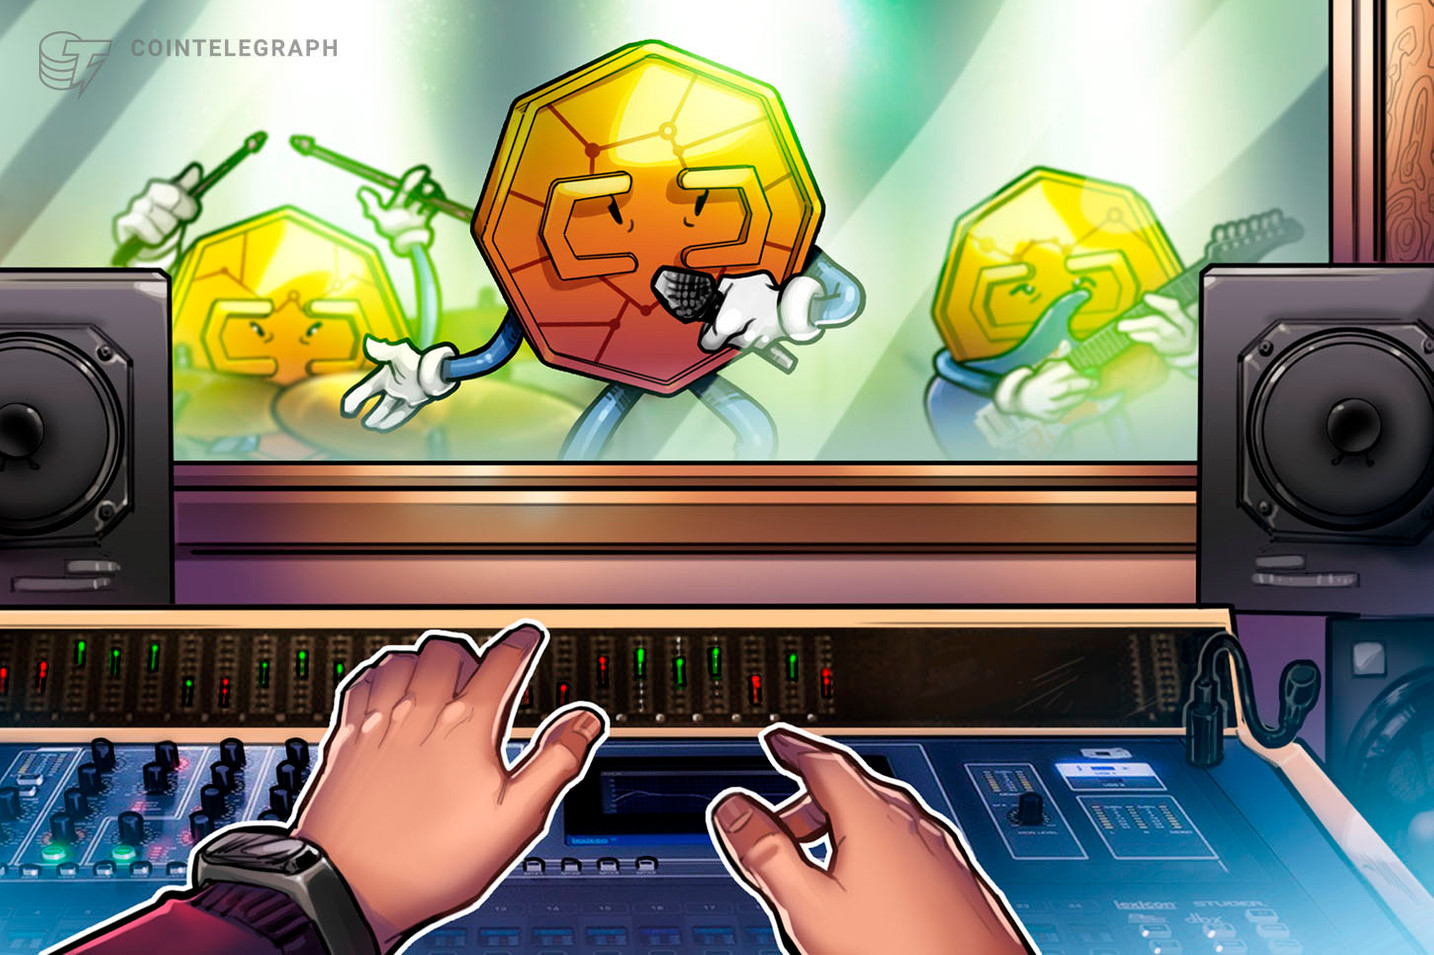 David Guetta secures deal with crypto-centered VR platform